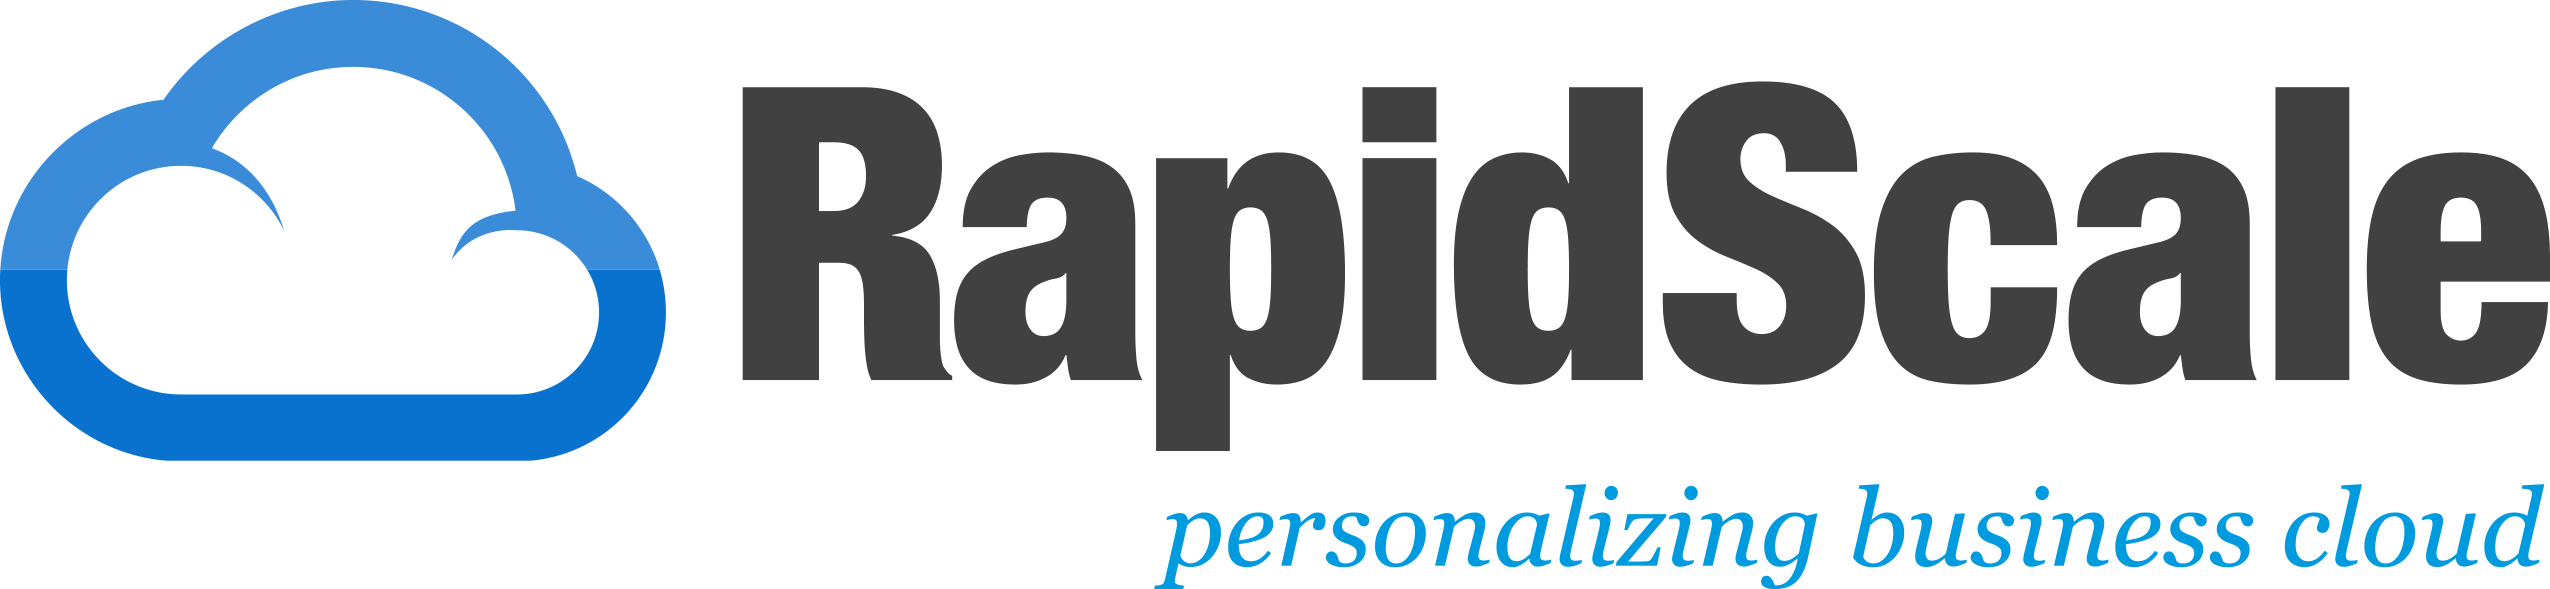 RapidScale-logo-with-tag-line